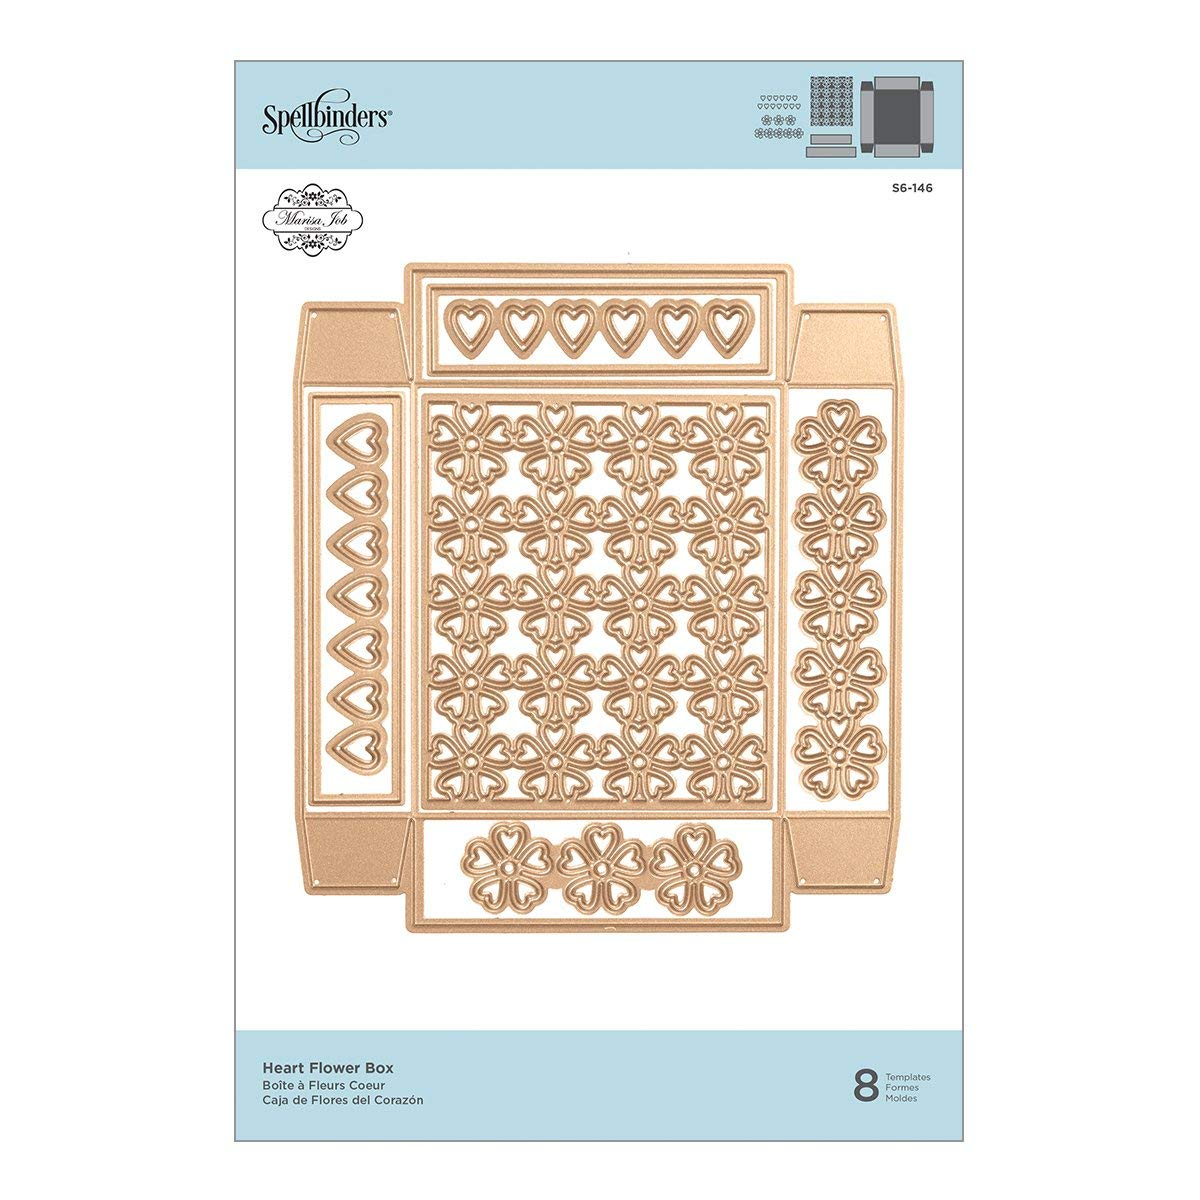 Amazon.com: Spellbinders Shapeabilities Heart Flower Box Etched/Wafer Thin Dies